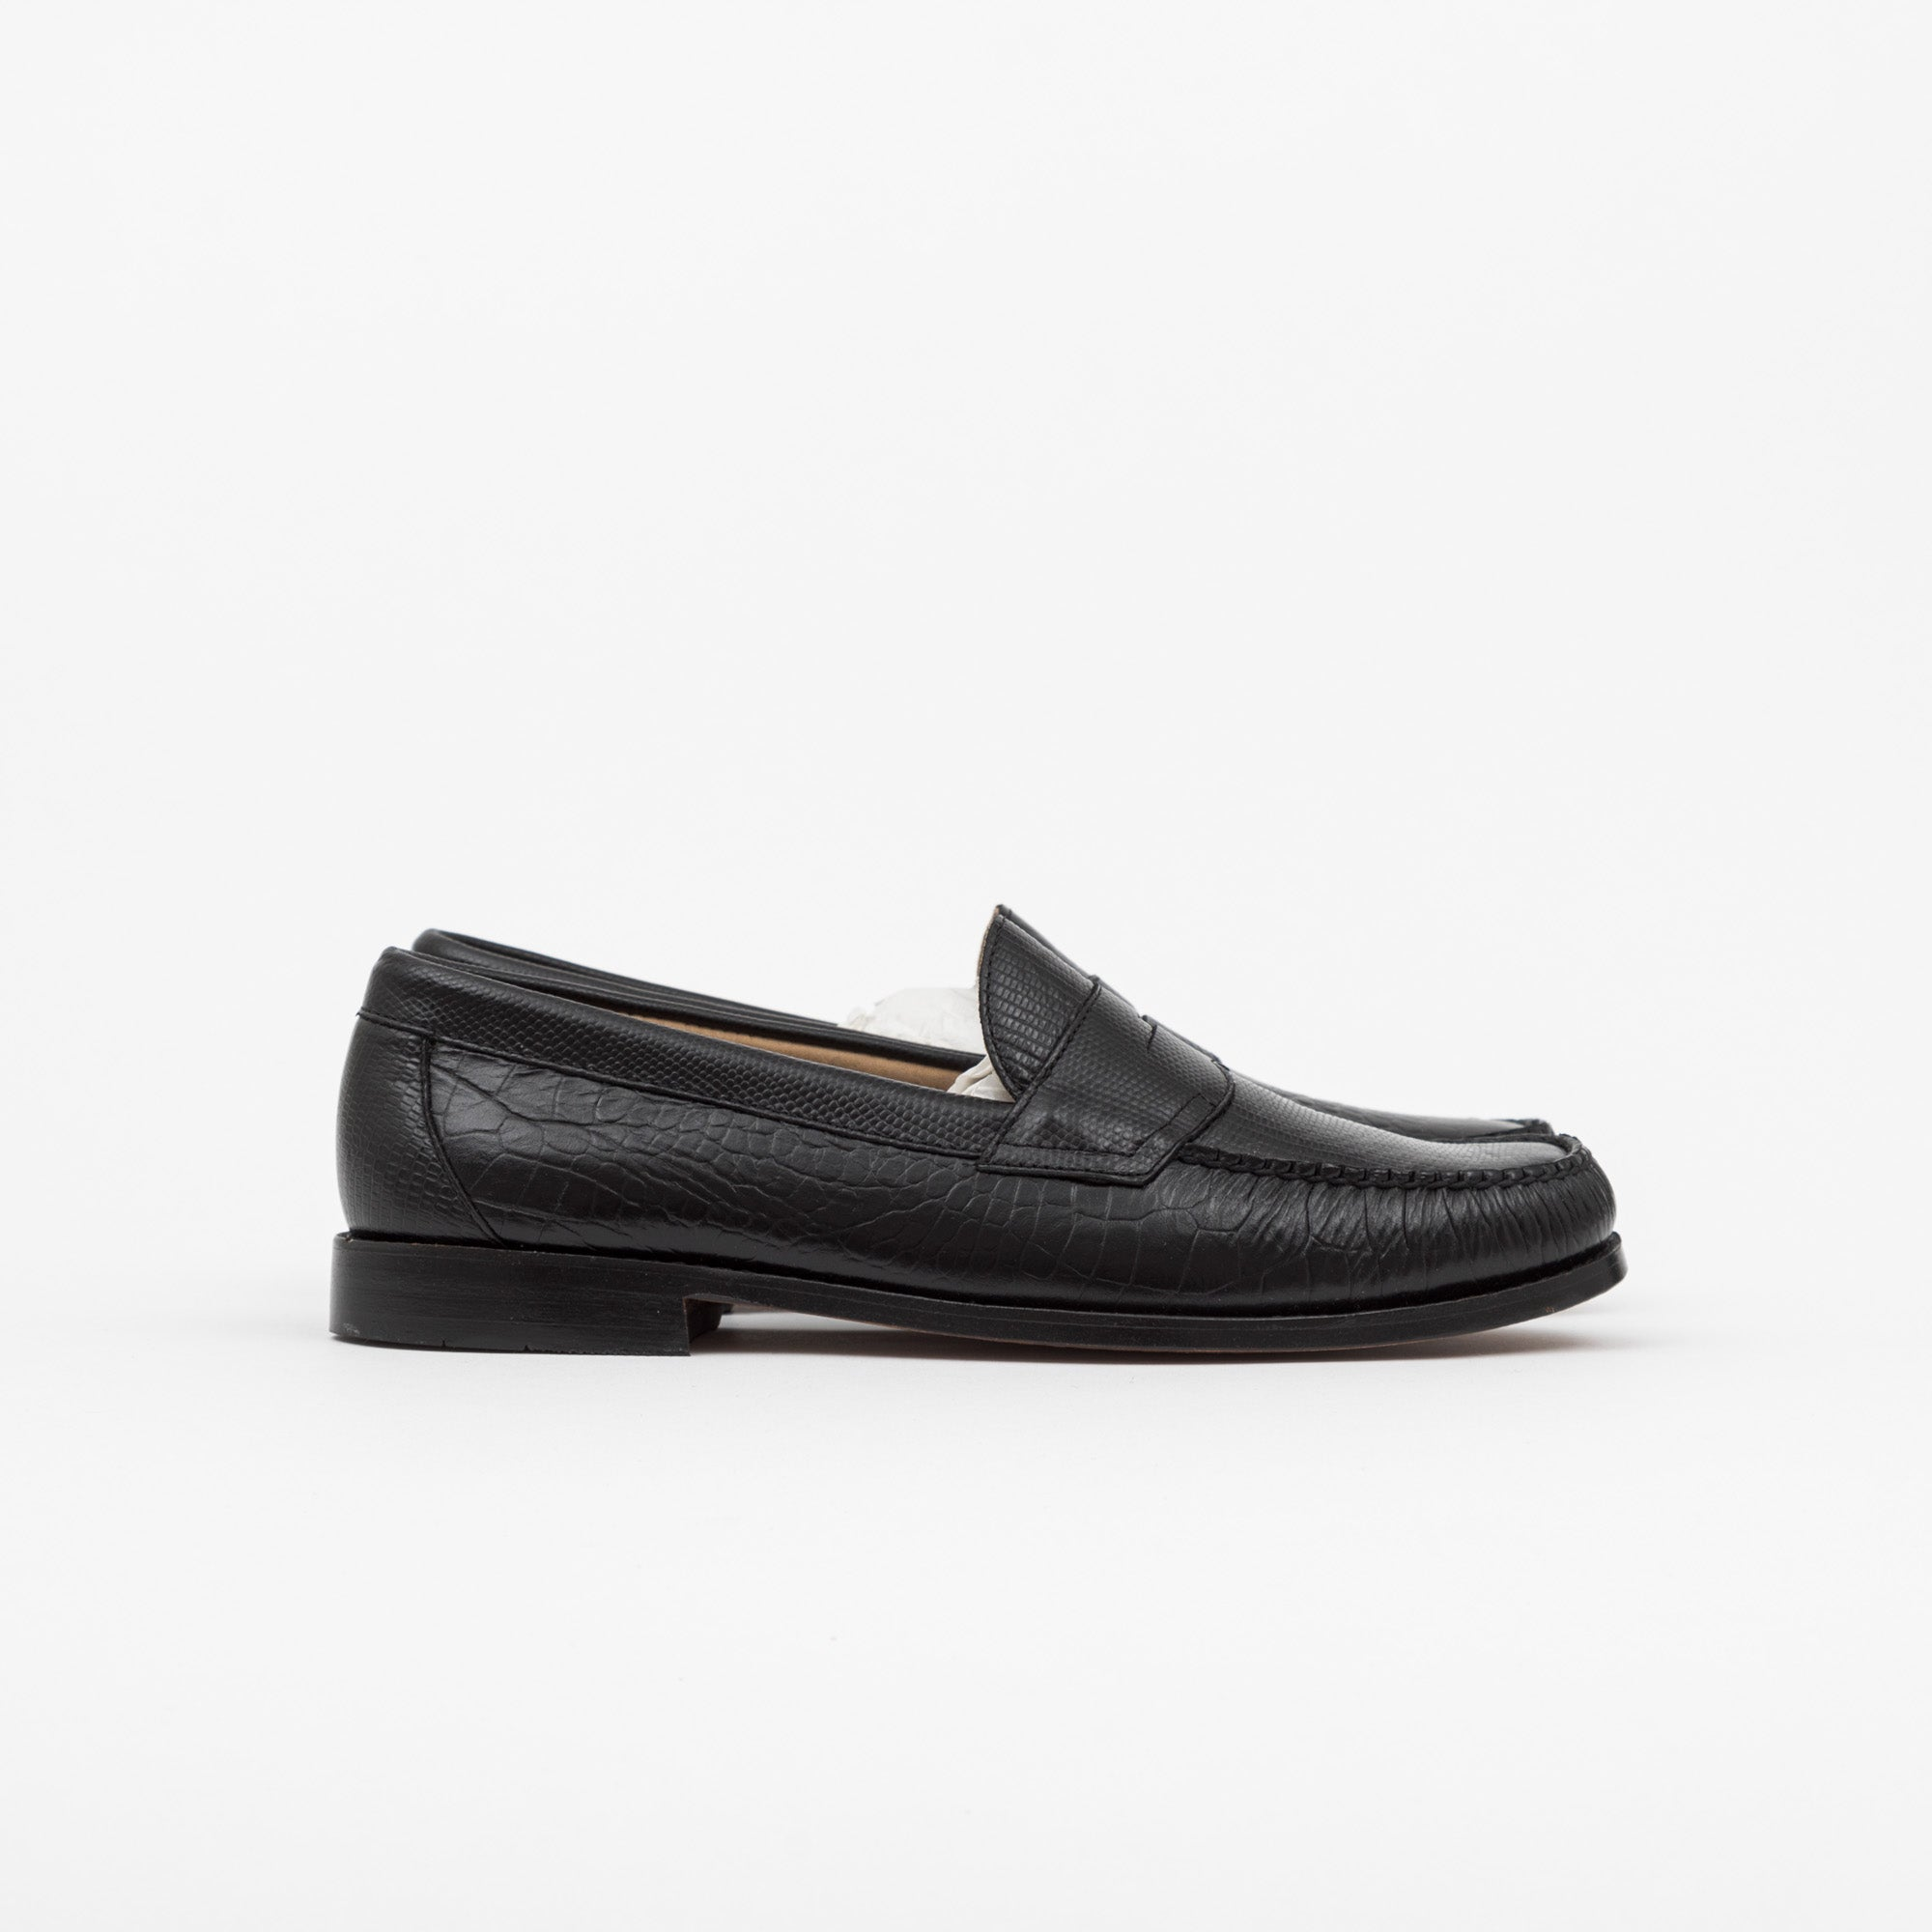 G.H Bass x Engineered Garments Logan Croc Leather Loafers